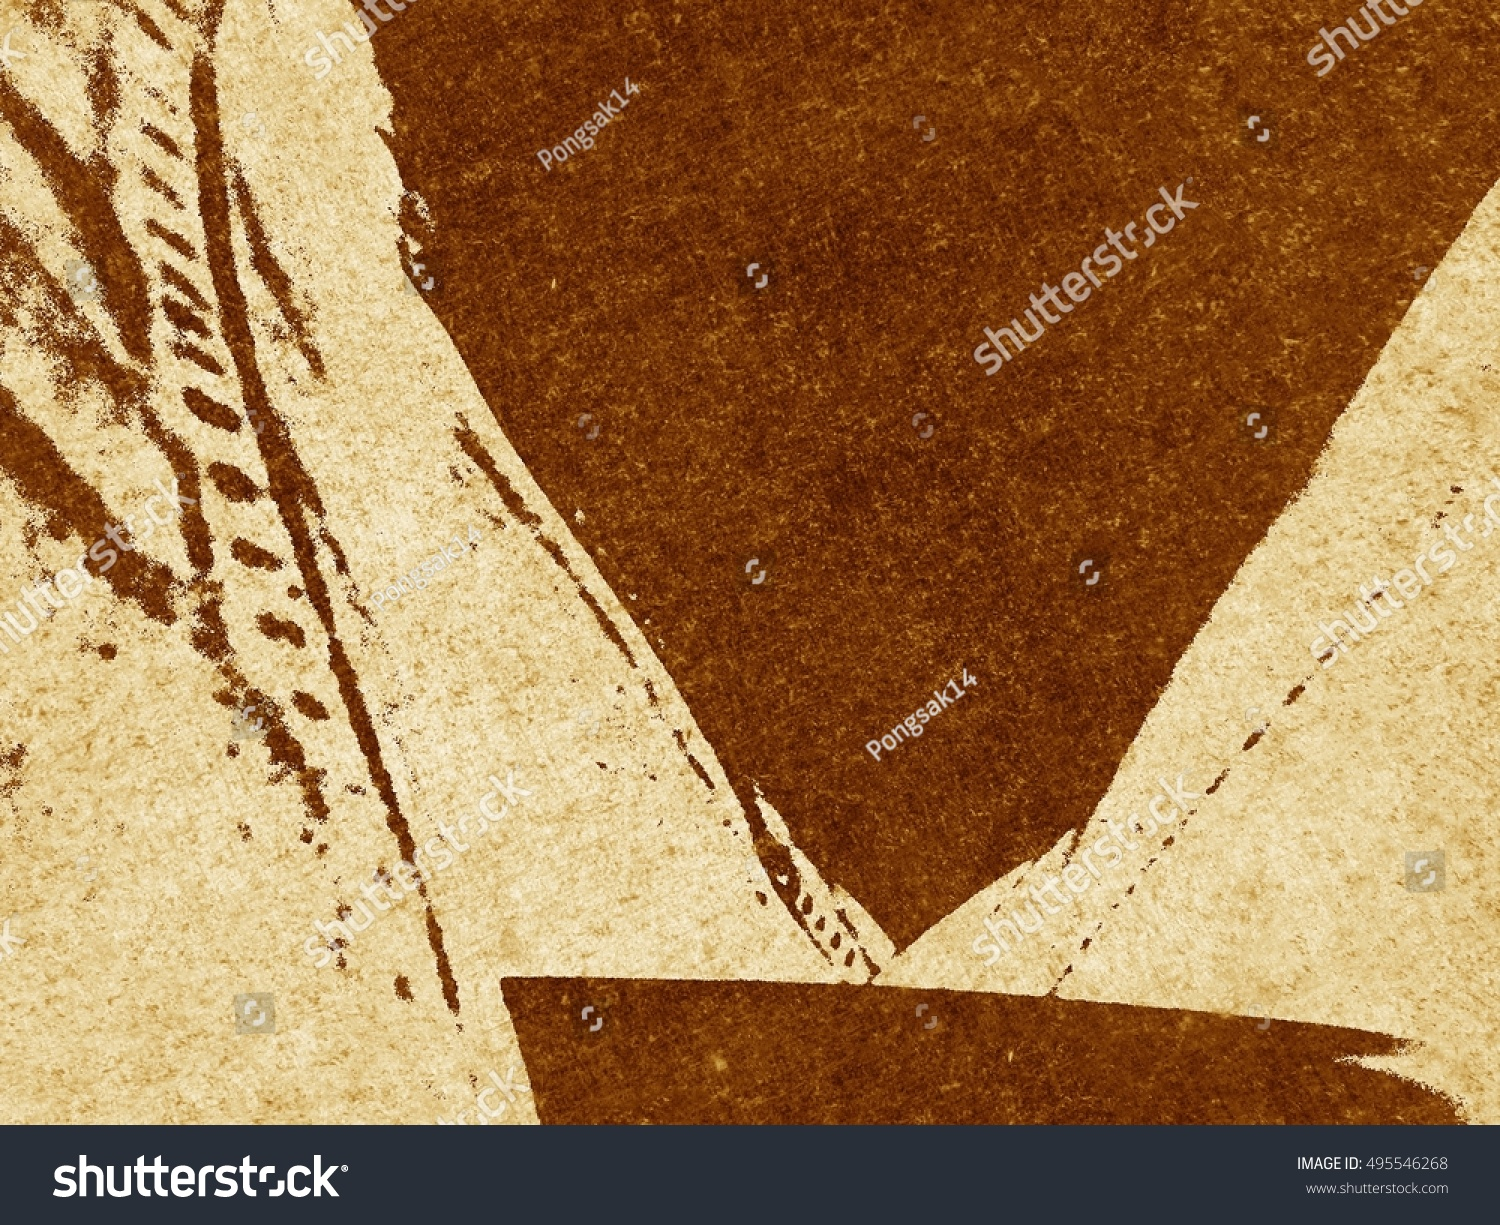 Abstract Grungy Background Volleyball Arrowhead Stock: Art Grunge Brown Abstract Pattern Illustration Stock